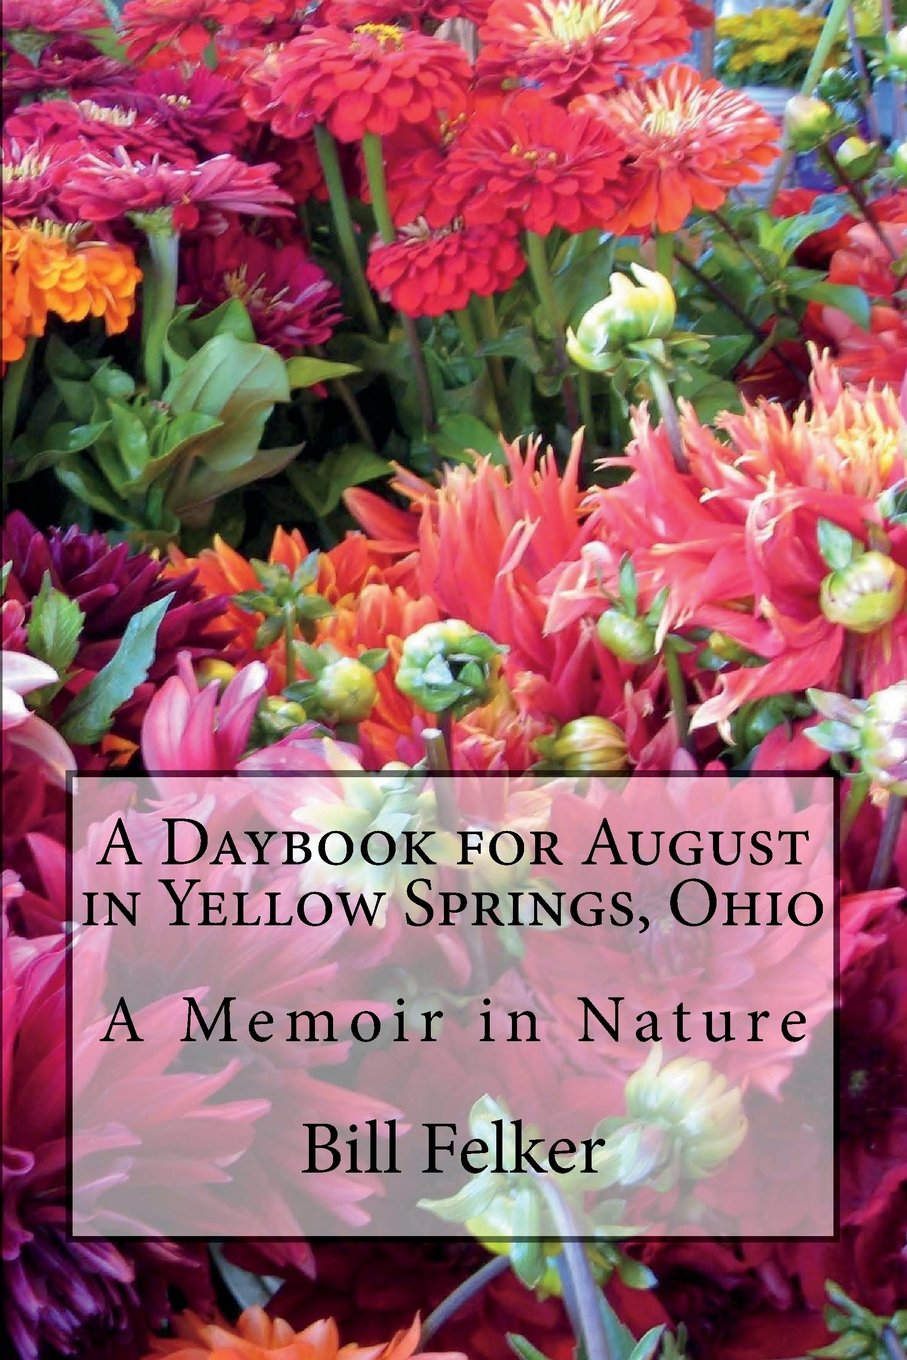 Read Online A Daybook for August in Yellow Springs, Ohio: A Memoir in Nature (A Daybook for the Year in Yellow Springs, Ohio) (Volume 8) PDF